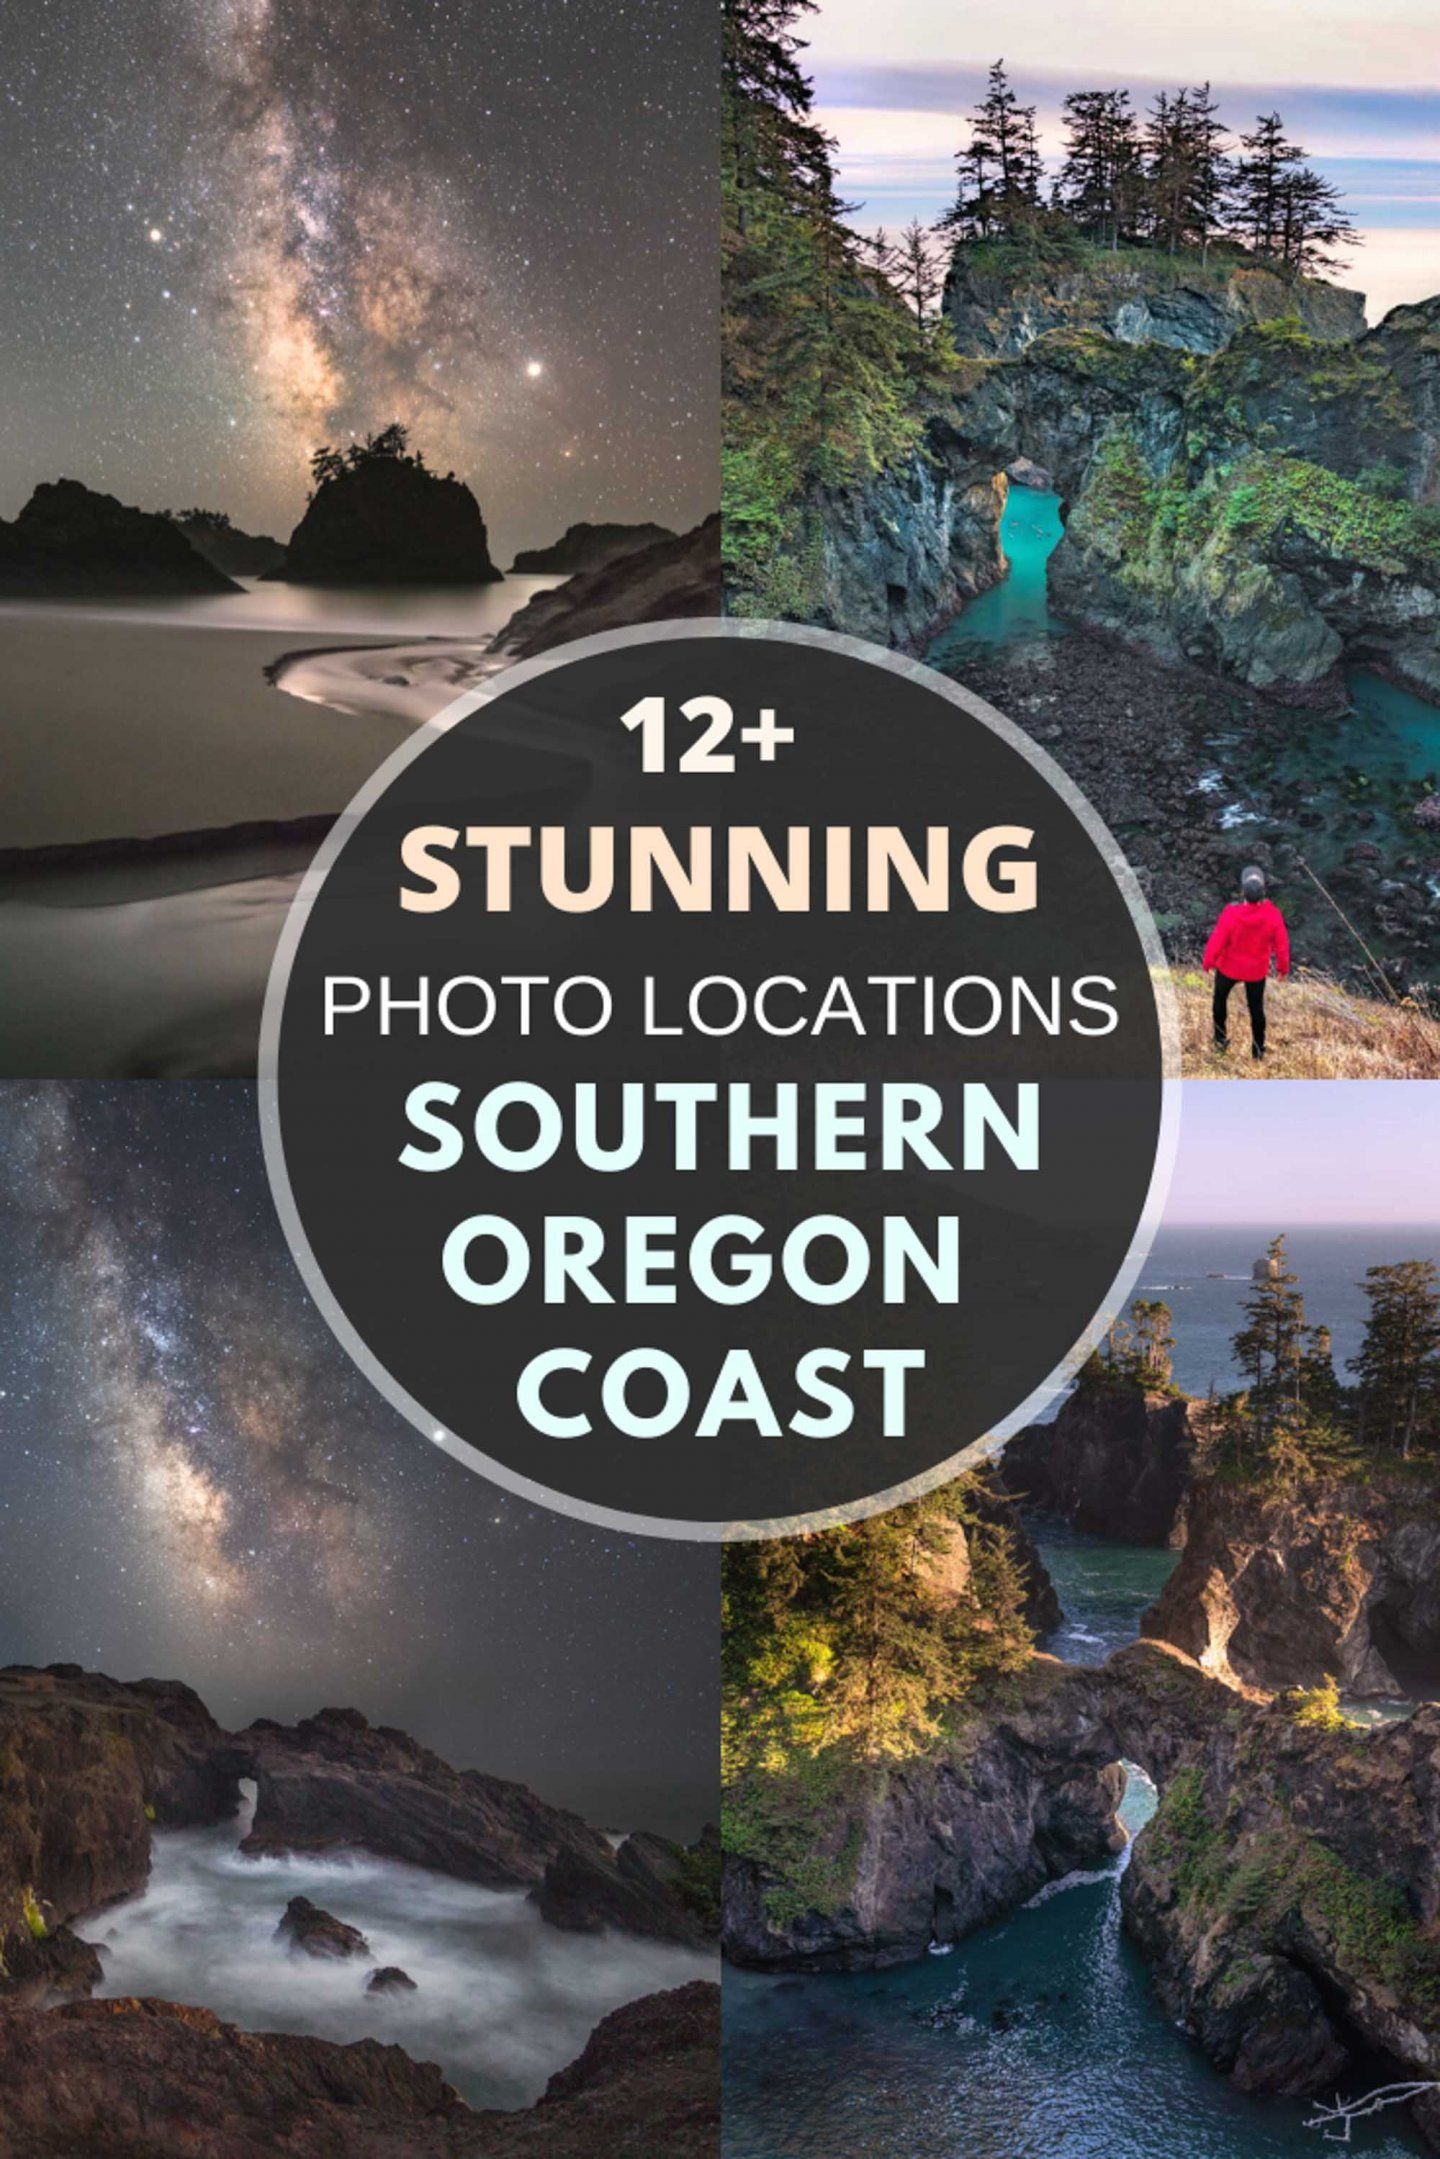 Stunning Photo Locations on the Southern Oregon Coast